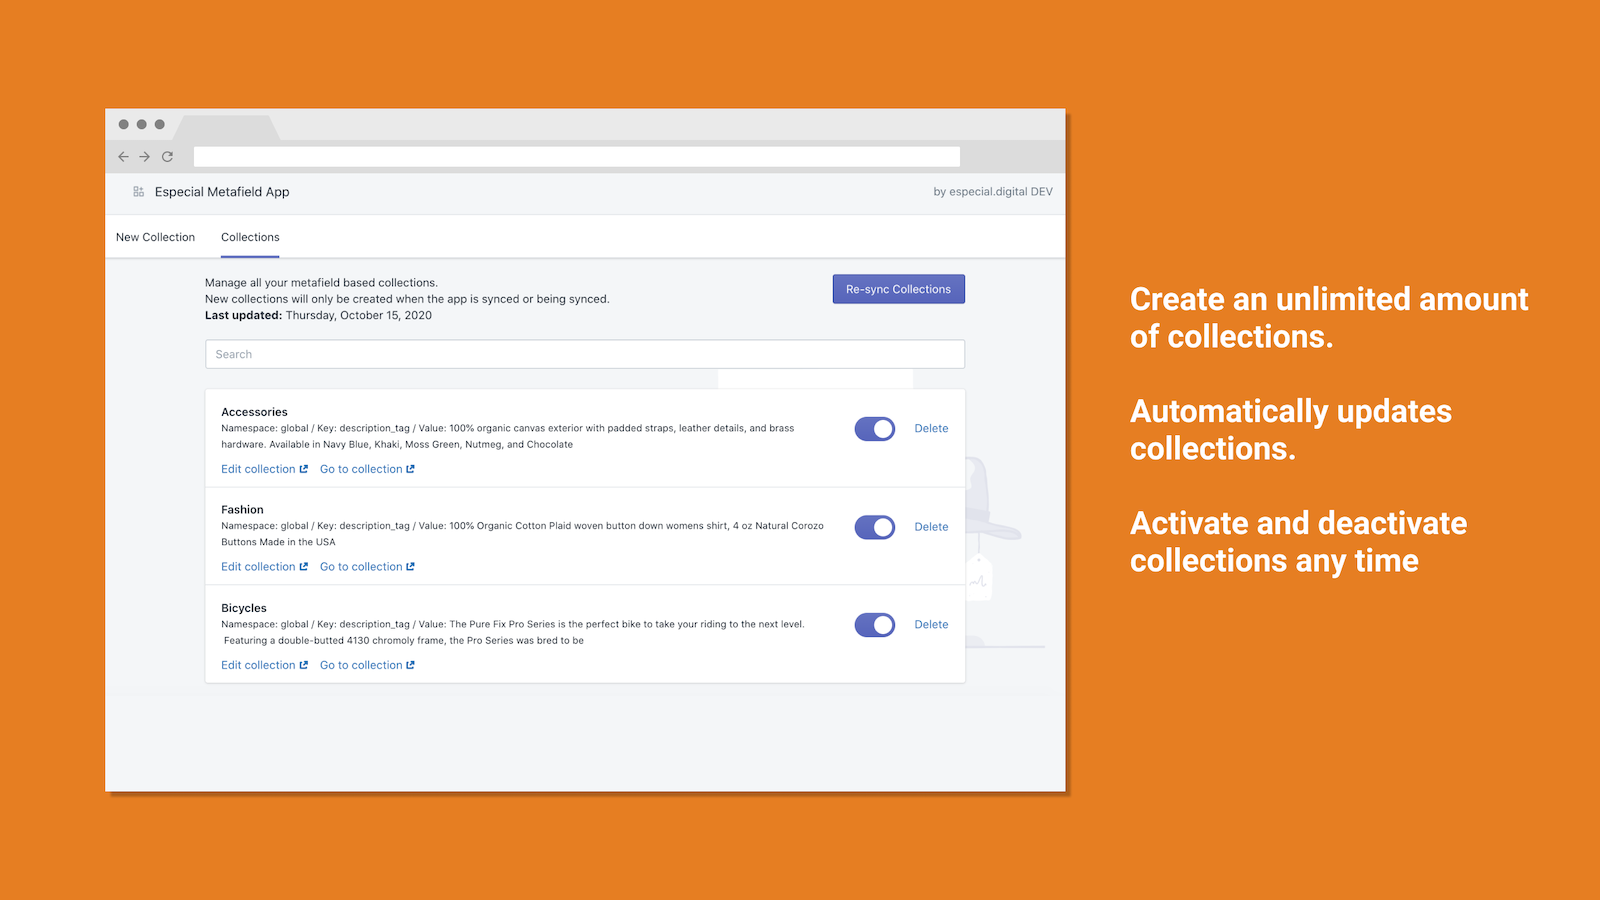 smart automated metafield collections app image and features